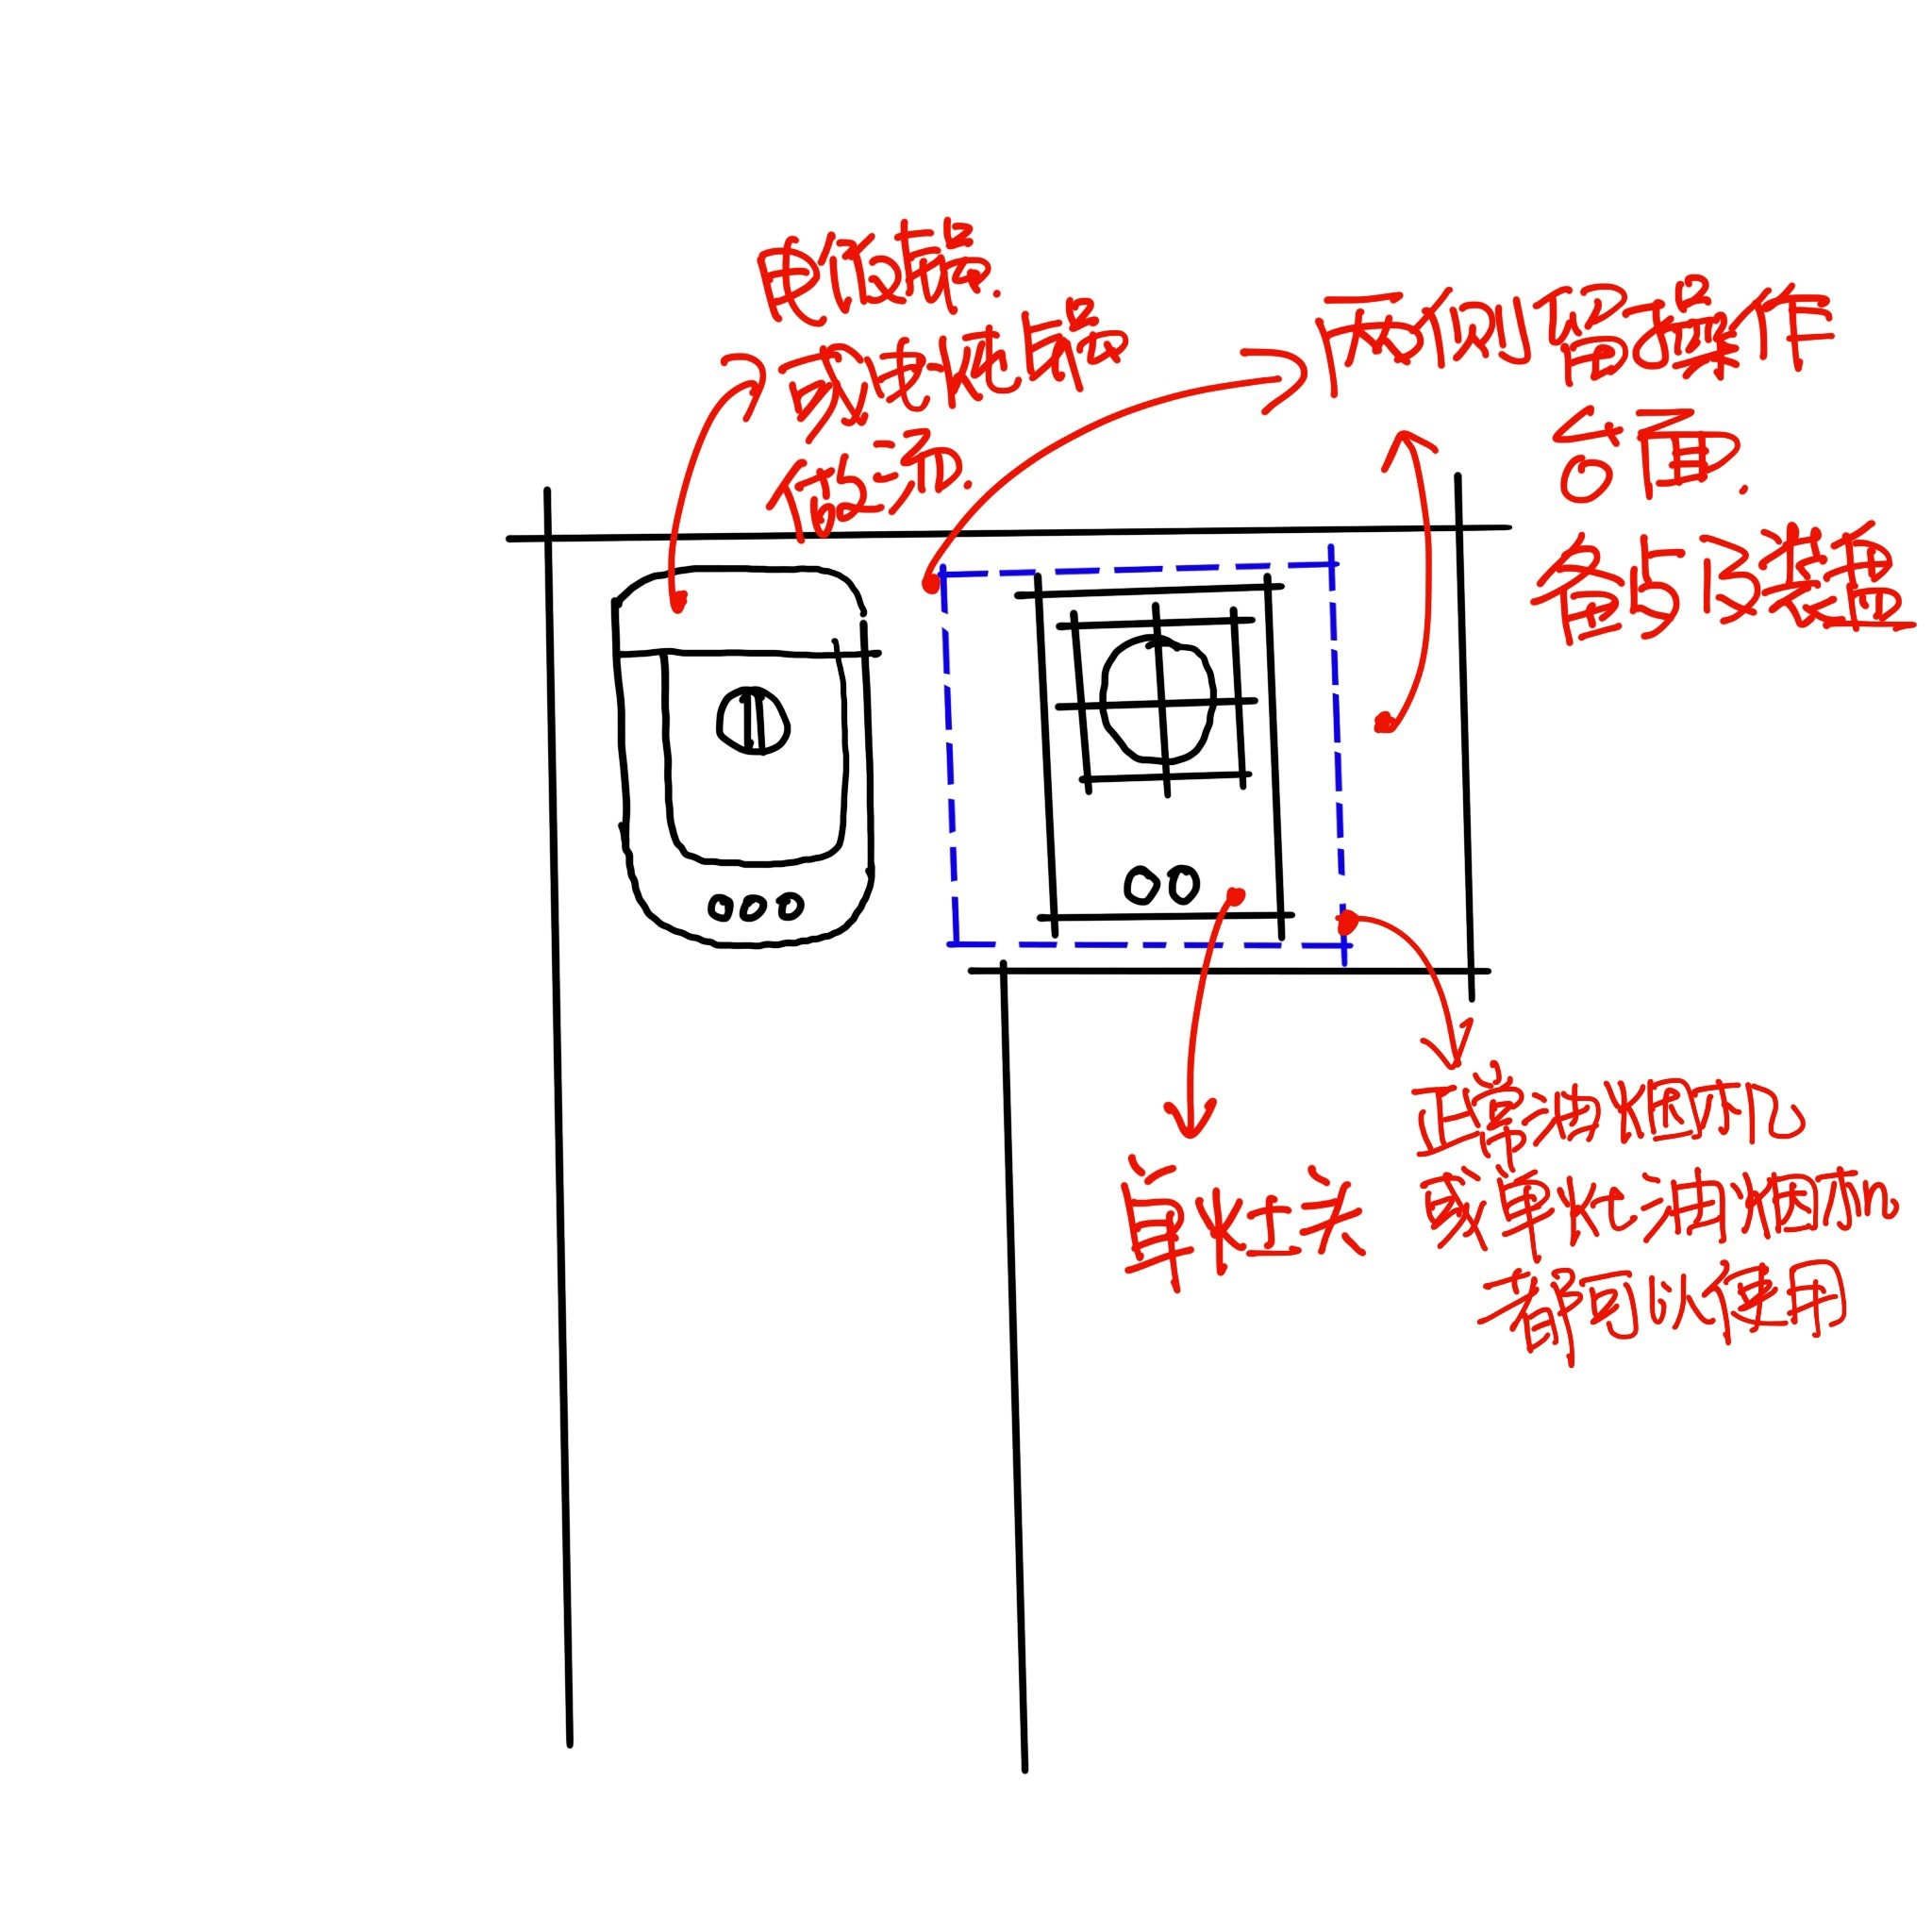 sink for kitchen average cost to remodel a 厨房装修看这一篇就够了(精华版) - 知乎